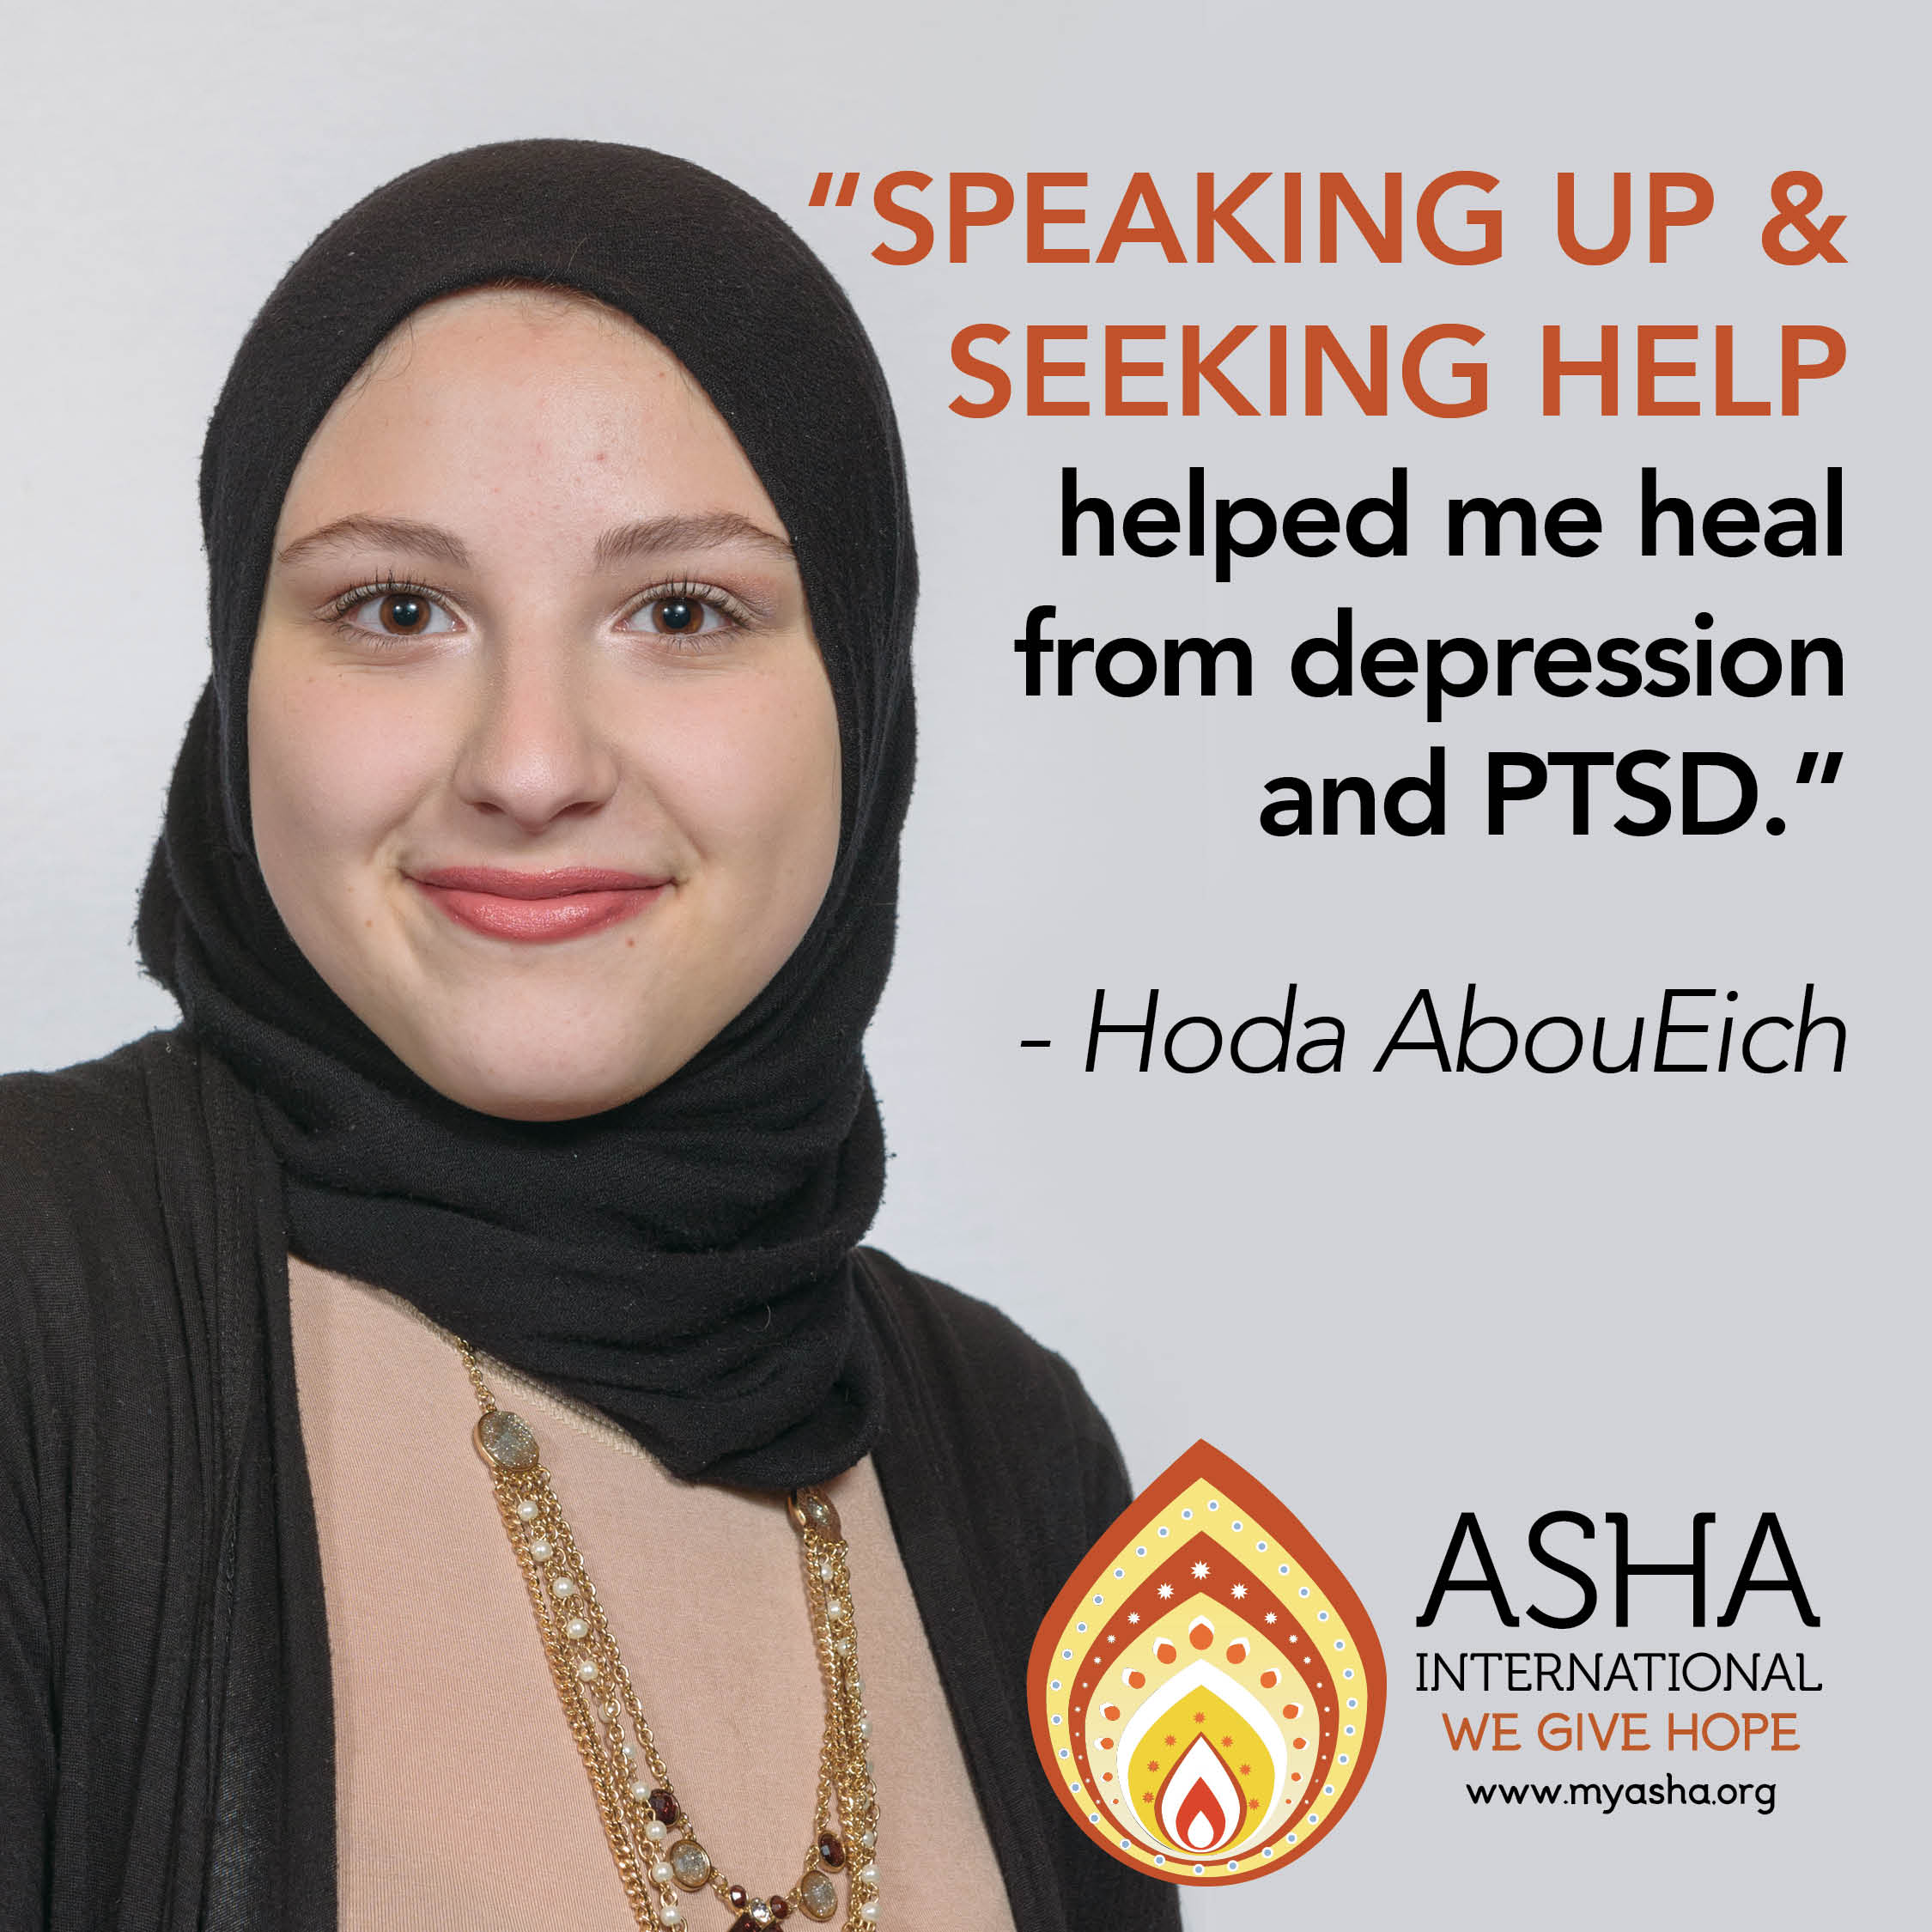 Speaking up & seeking help helped me heal from PTSD and depression.